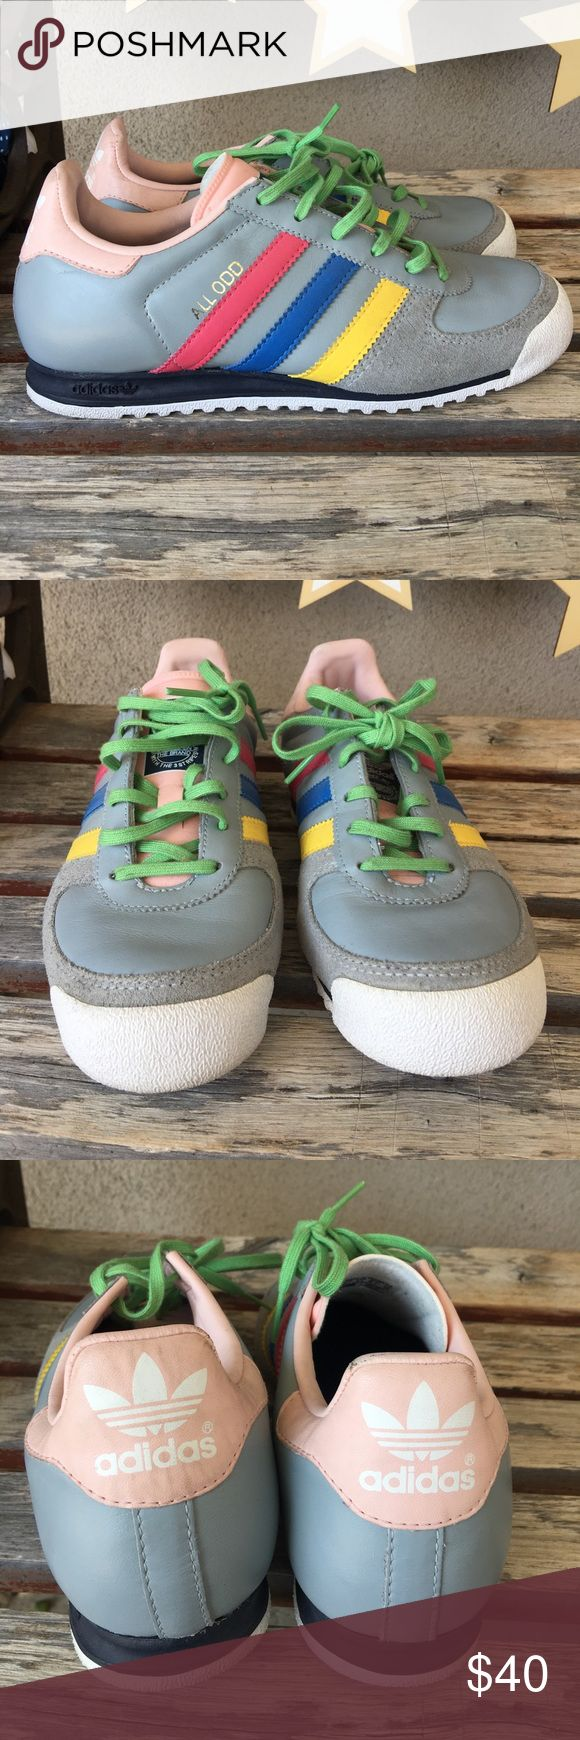 Adidas all odd rainbow sneakers size 37.5 Adidas all odd rainbow sneakers size 37.5. Loved no box adidas Shoes Sneakers